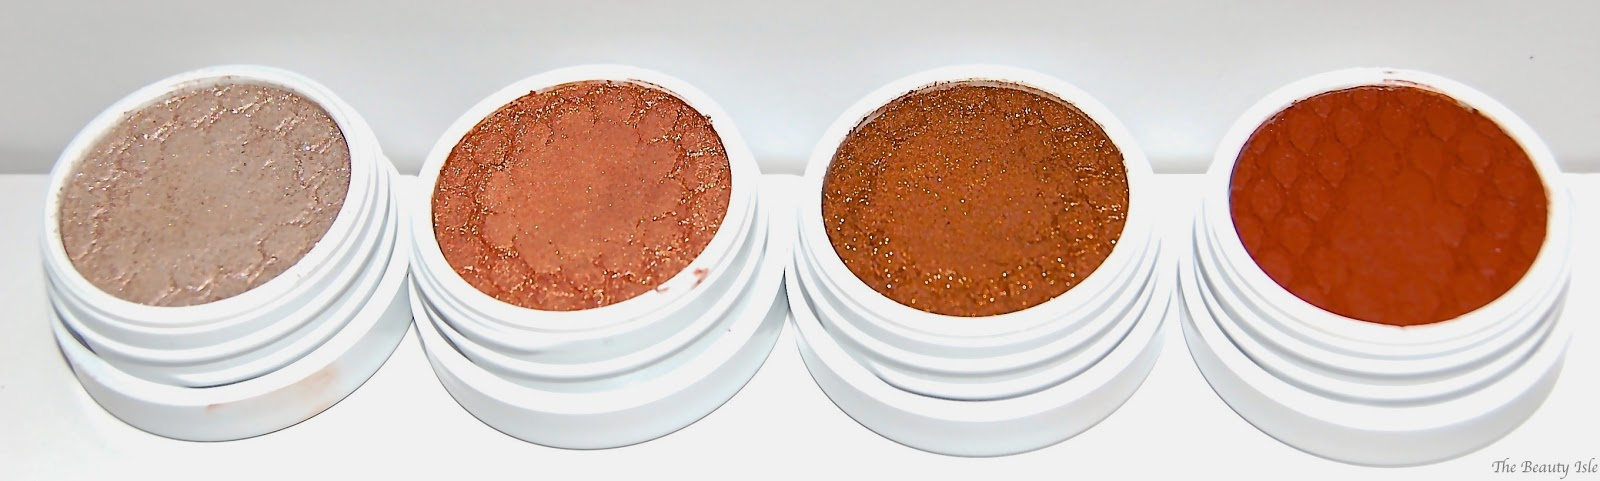 ColourPop Super Shock Eye Shadows